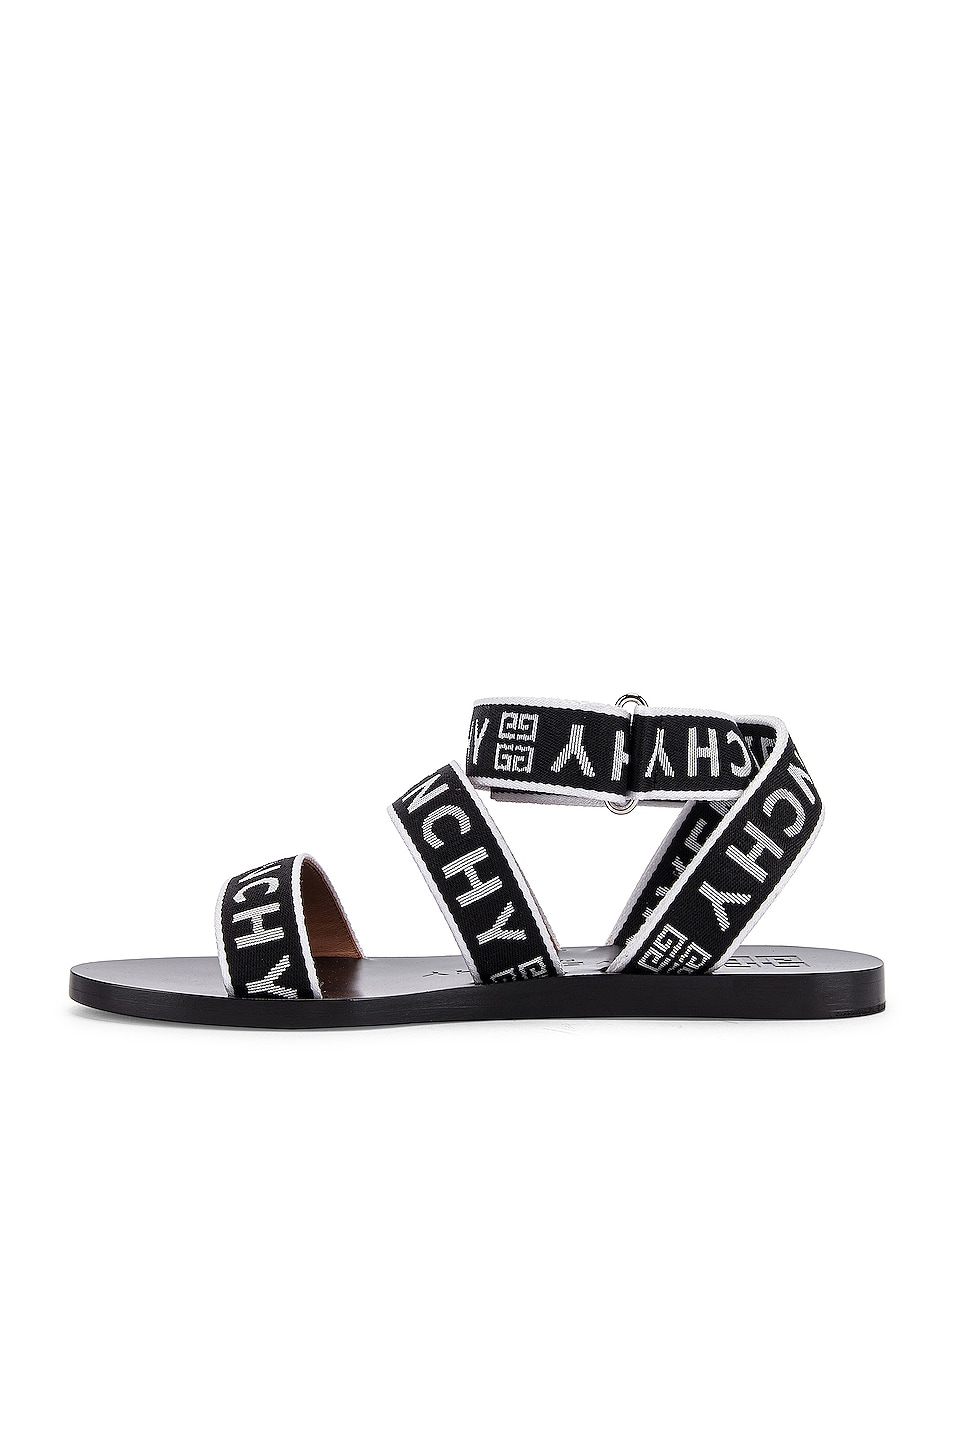 Image 5 of Givenchy Ankle Strap Sandals in Black & White